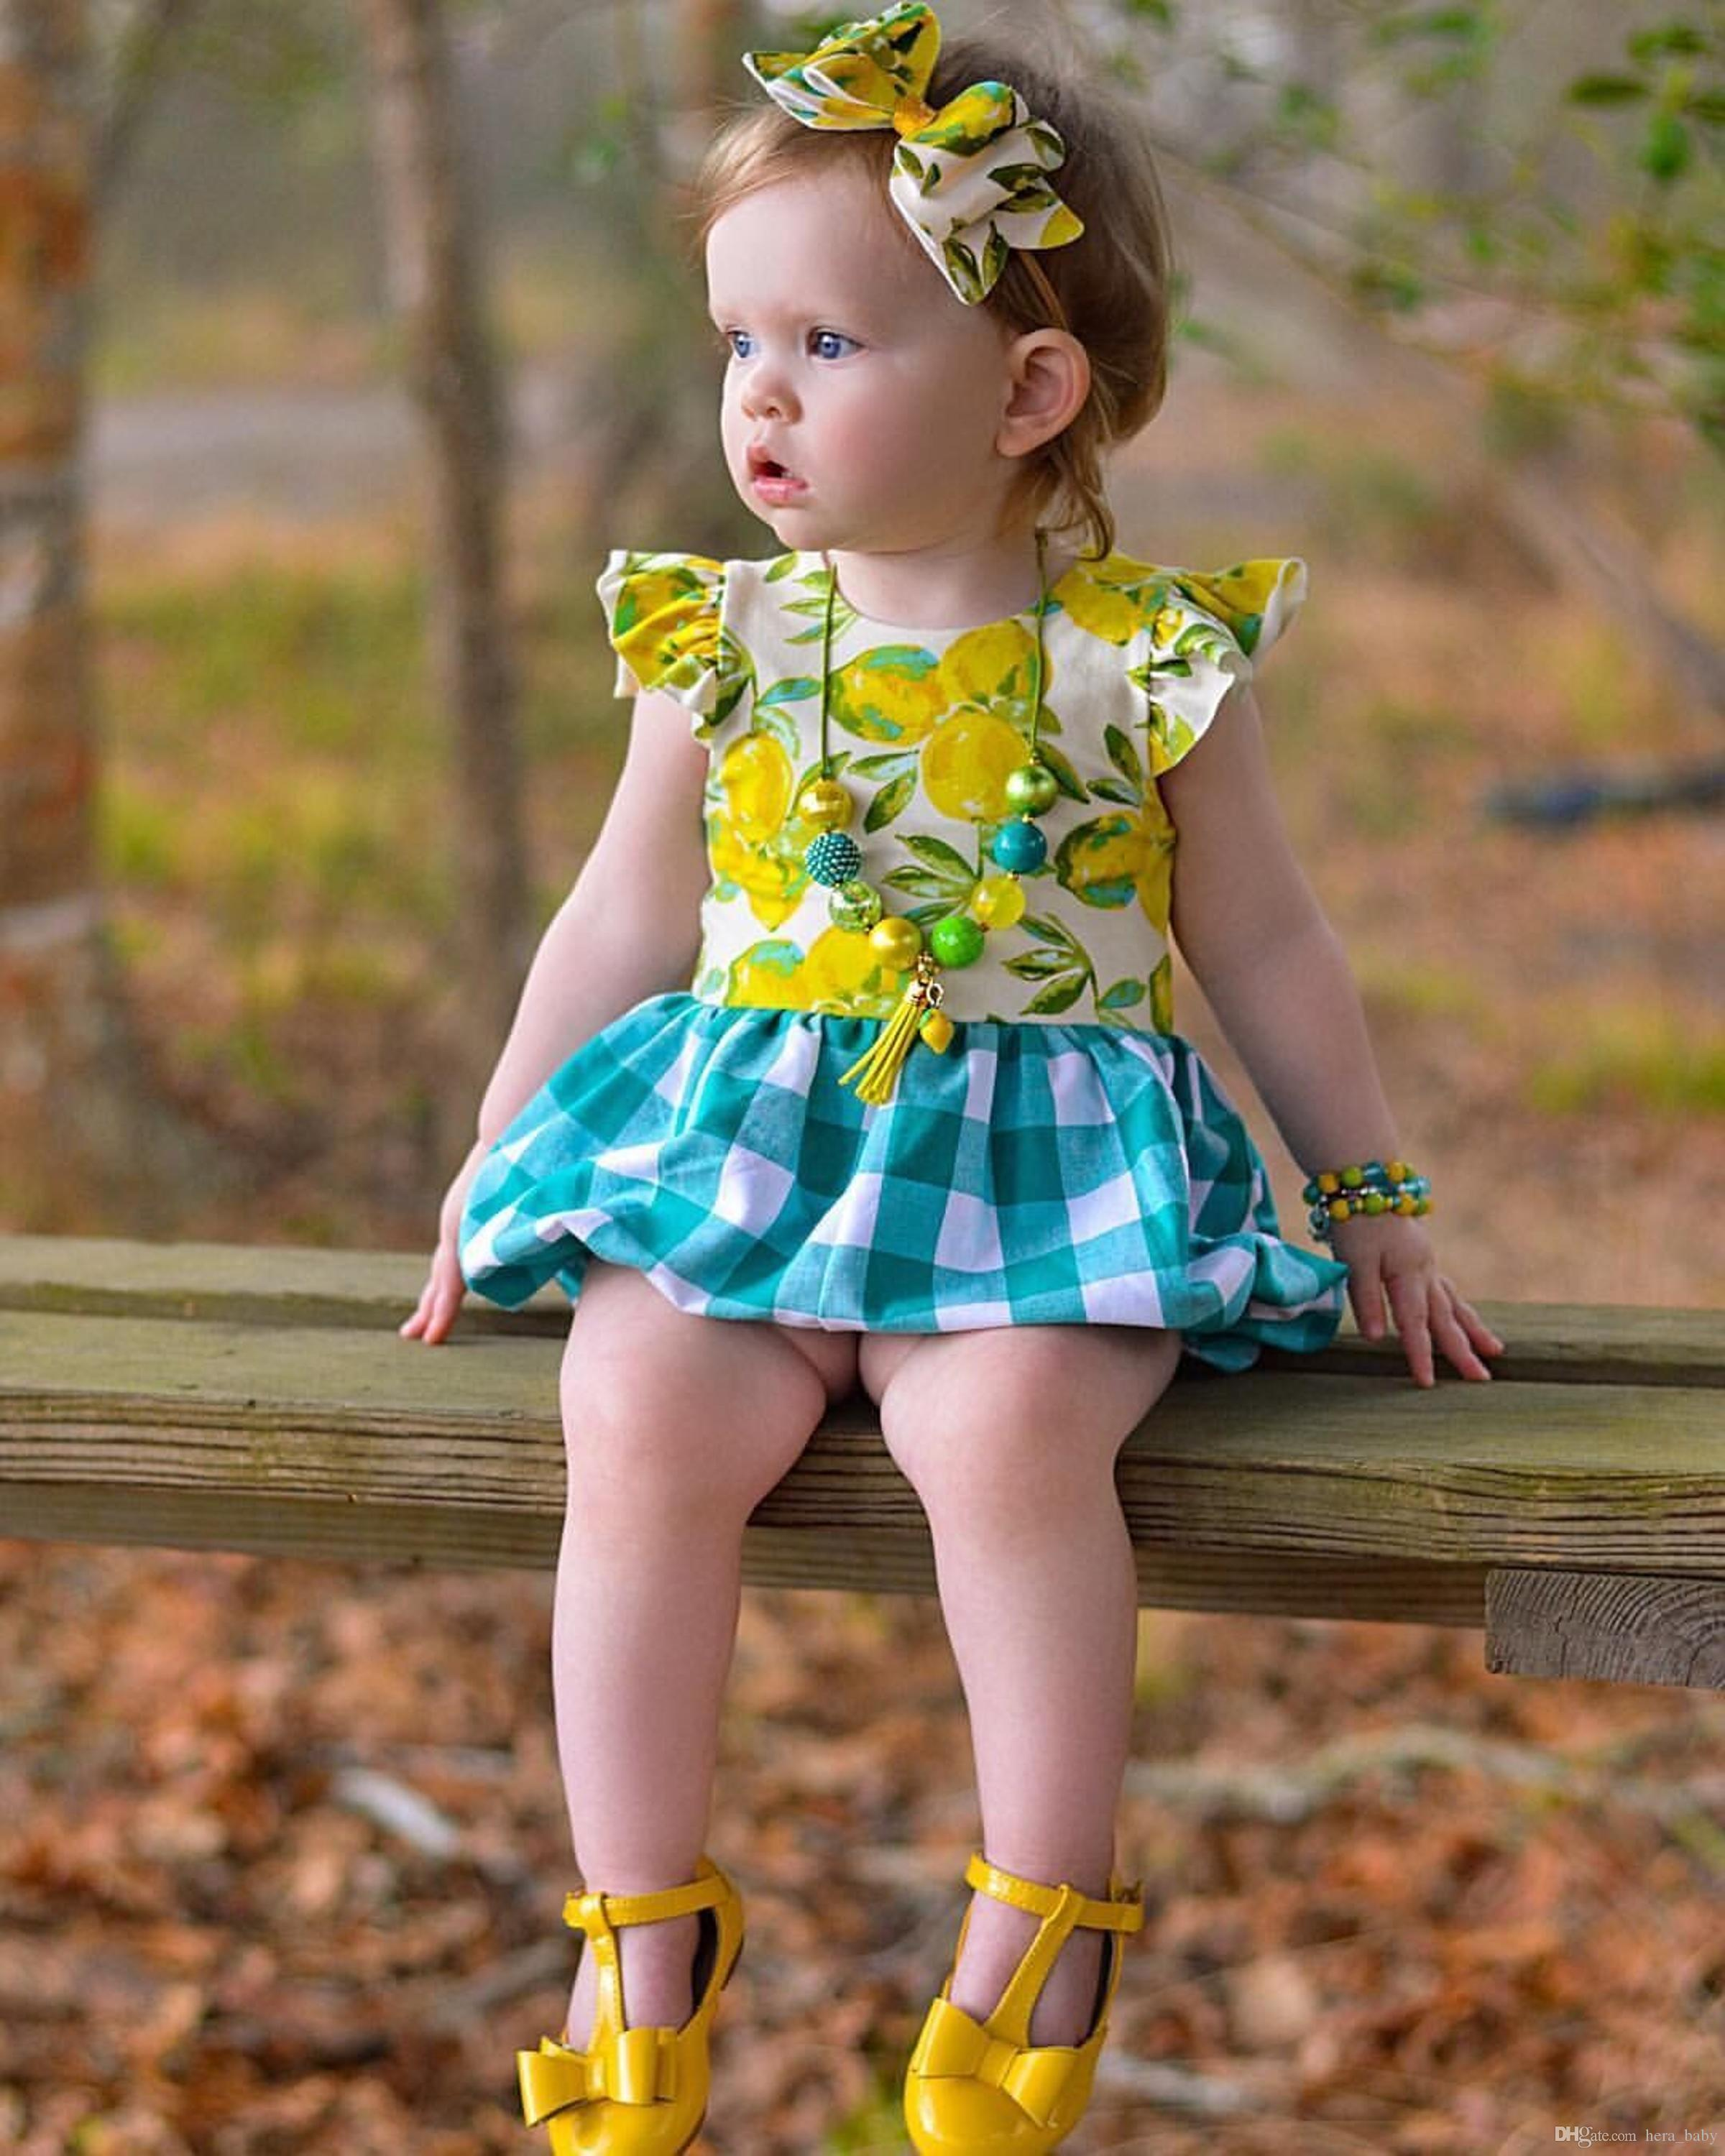 ac51d92d4 2017 new design ins hot sale baby girl fresh lemon plaid rompers cotton fly  sleeve knickers jumpsuits